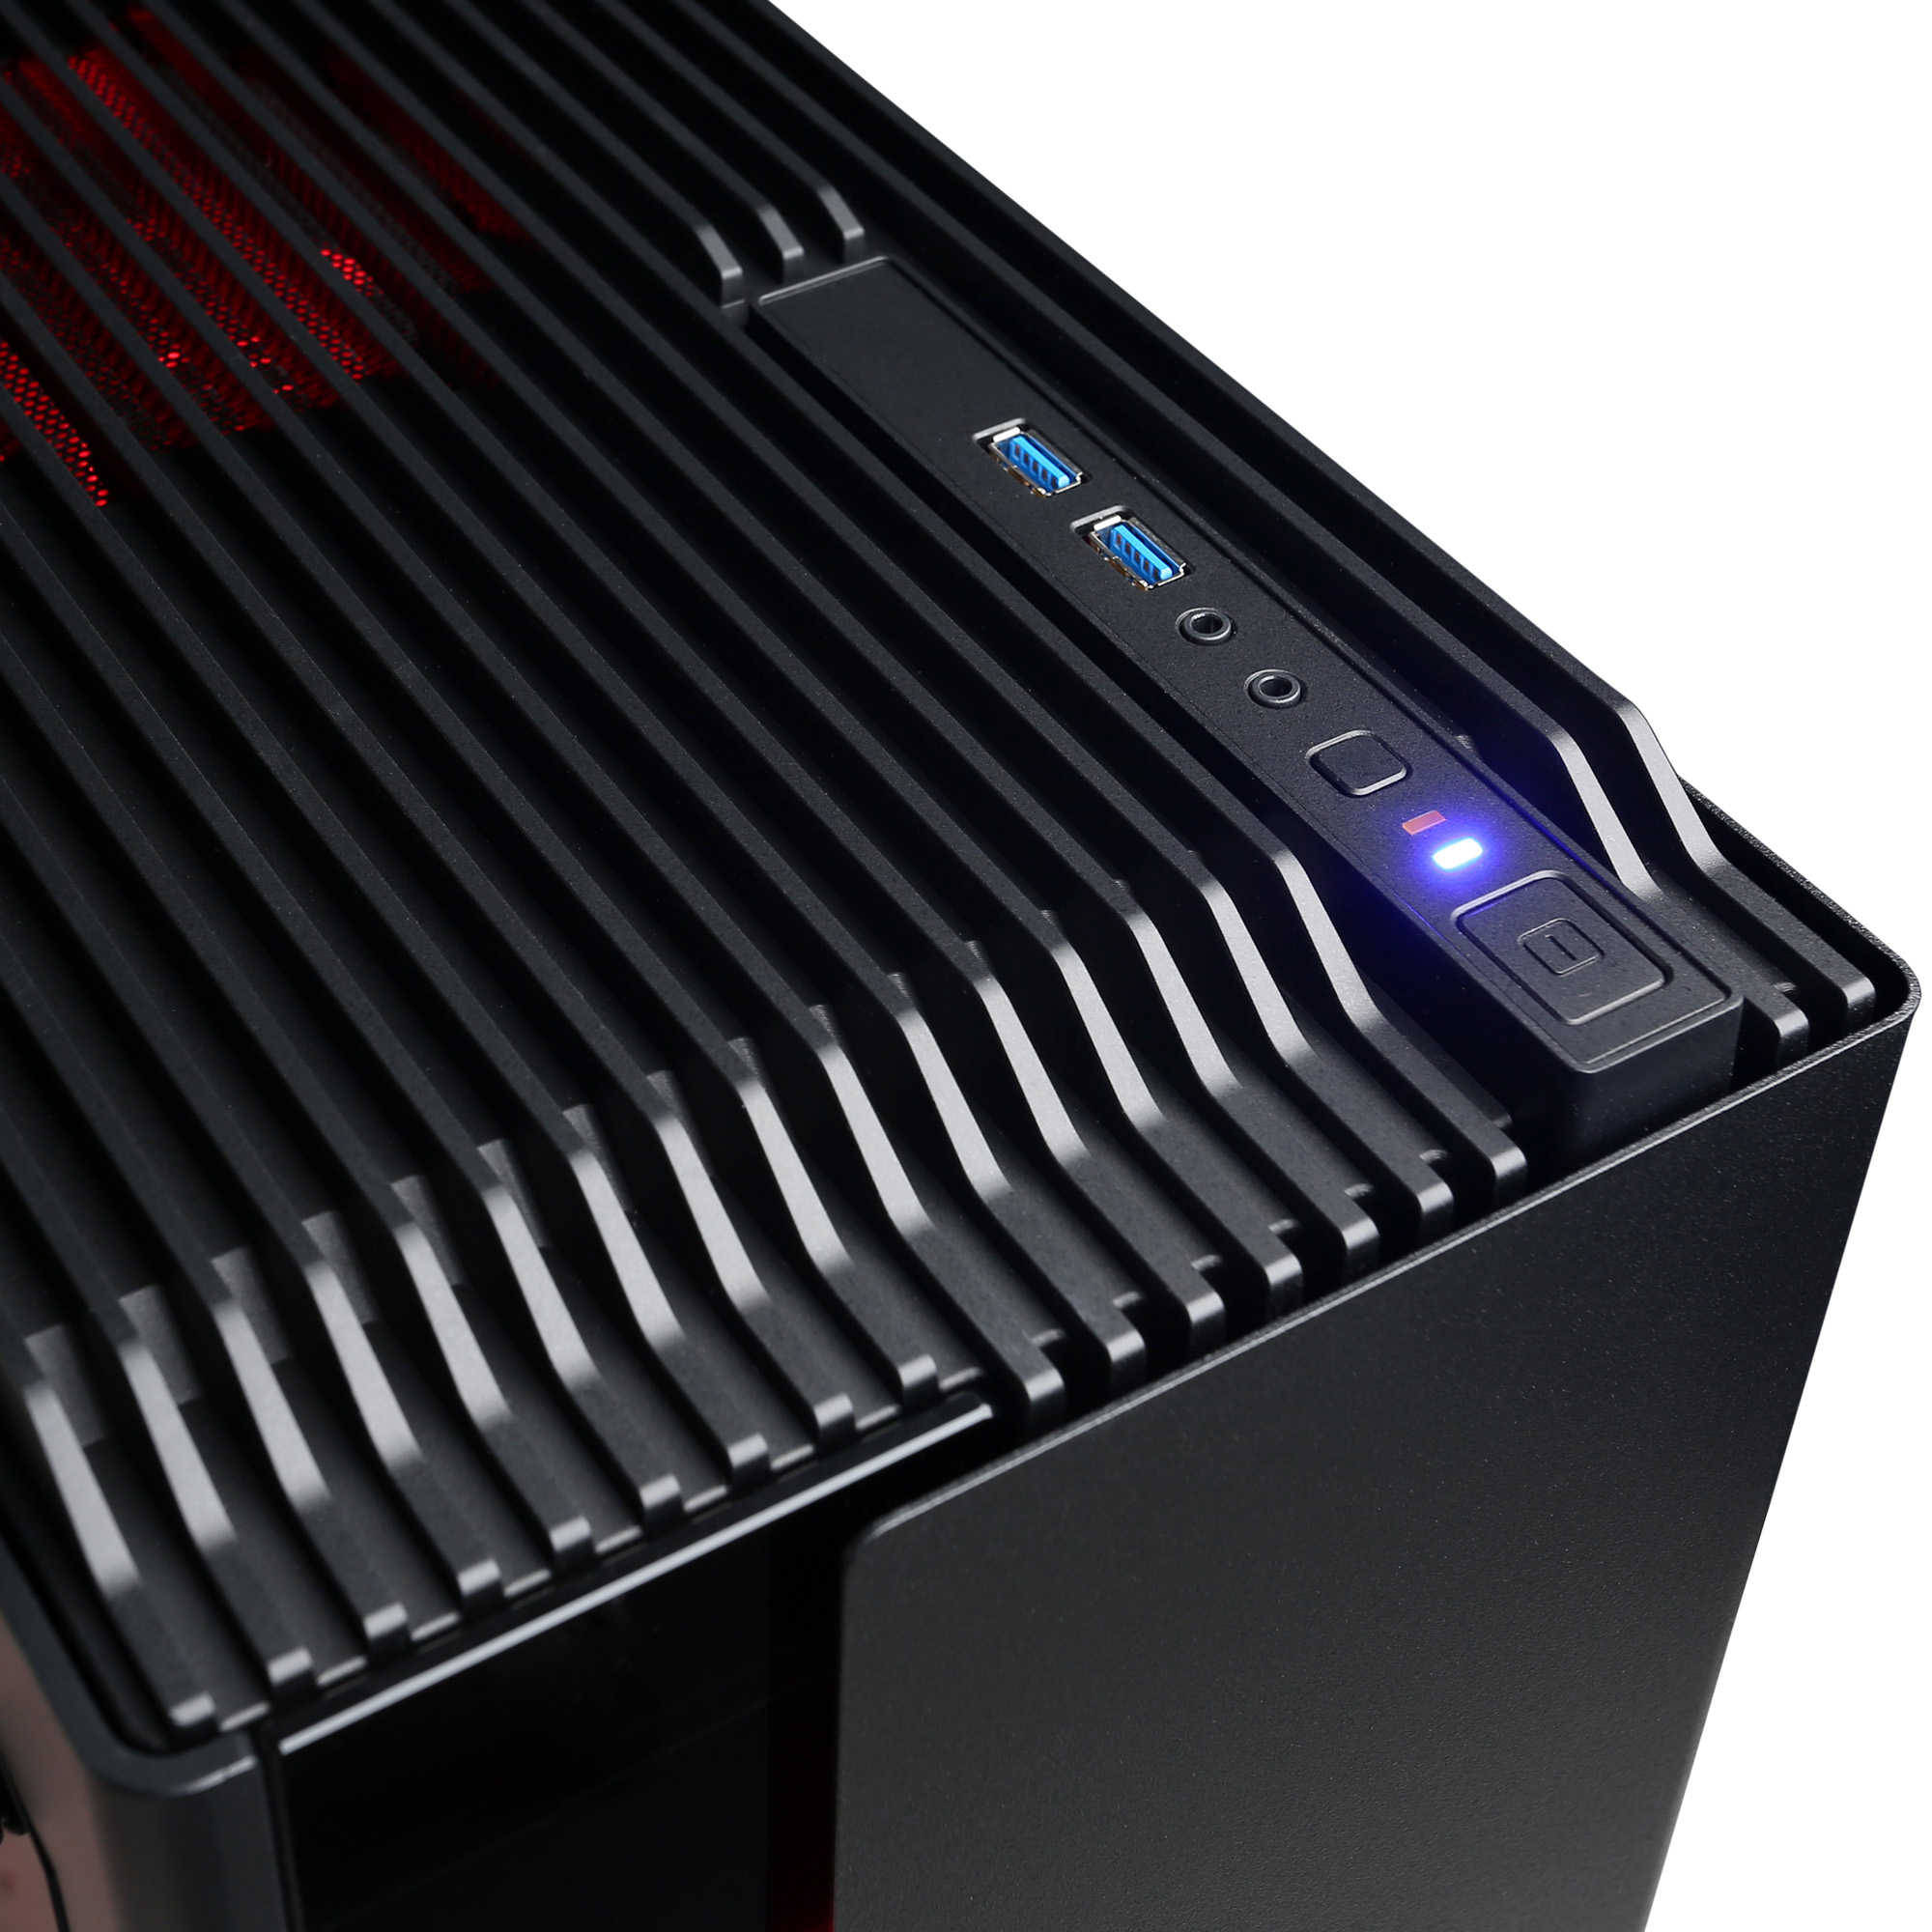 CYBERPOWERPC Gamer Xtreme GXi10840CPG Desktop Gaming PC with Intel i5-8400 2.8GHz, 8GB Memory, NVIDIA GeForce GT 730 2GB Graphics, 1TB HDD, 802.11ac WiFi and Windows 10 Home